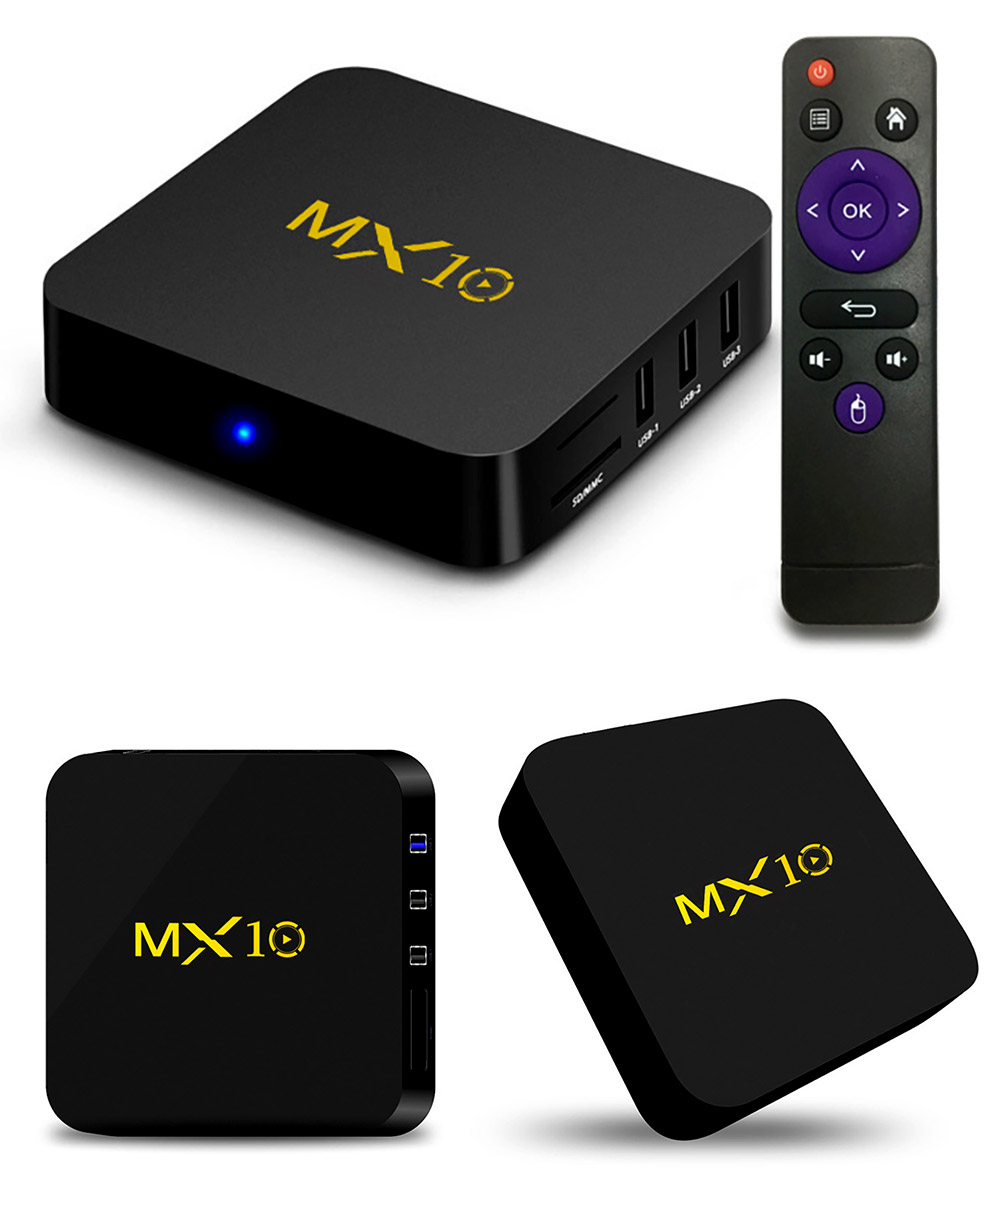 Tinkleo MX10 Kodi 17.1 Android TV Box 4G 32G RK3328 A53 3D 4K Wifi USB 3.0 With Remote 8